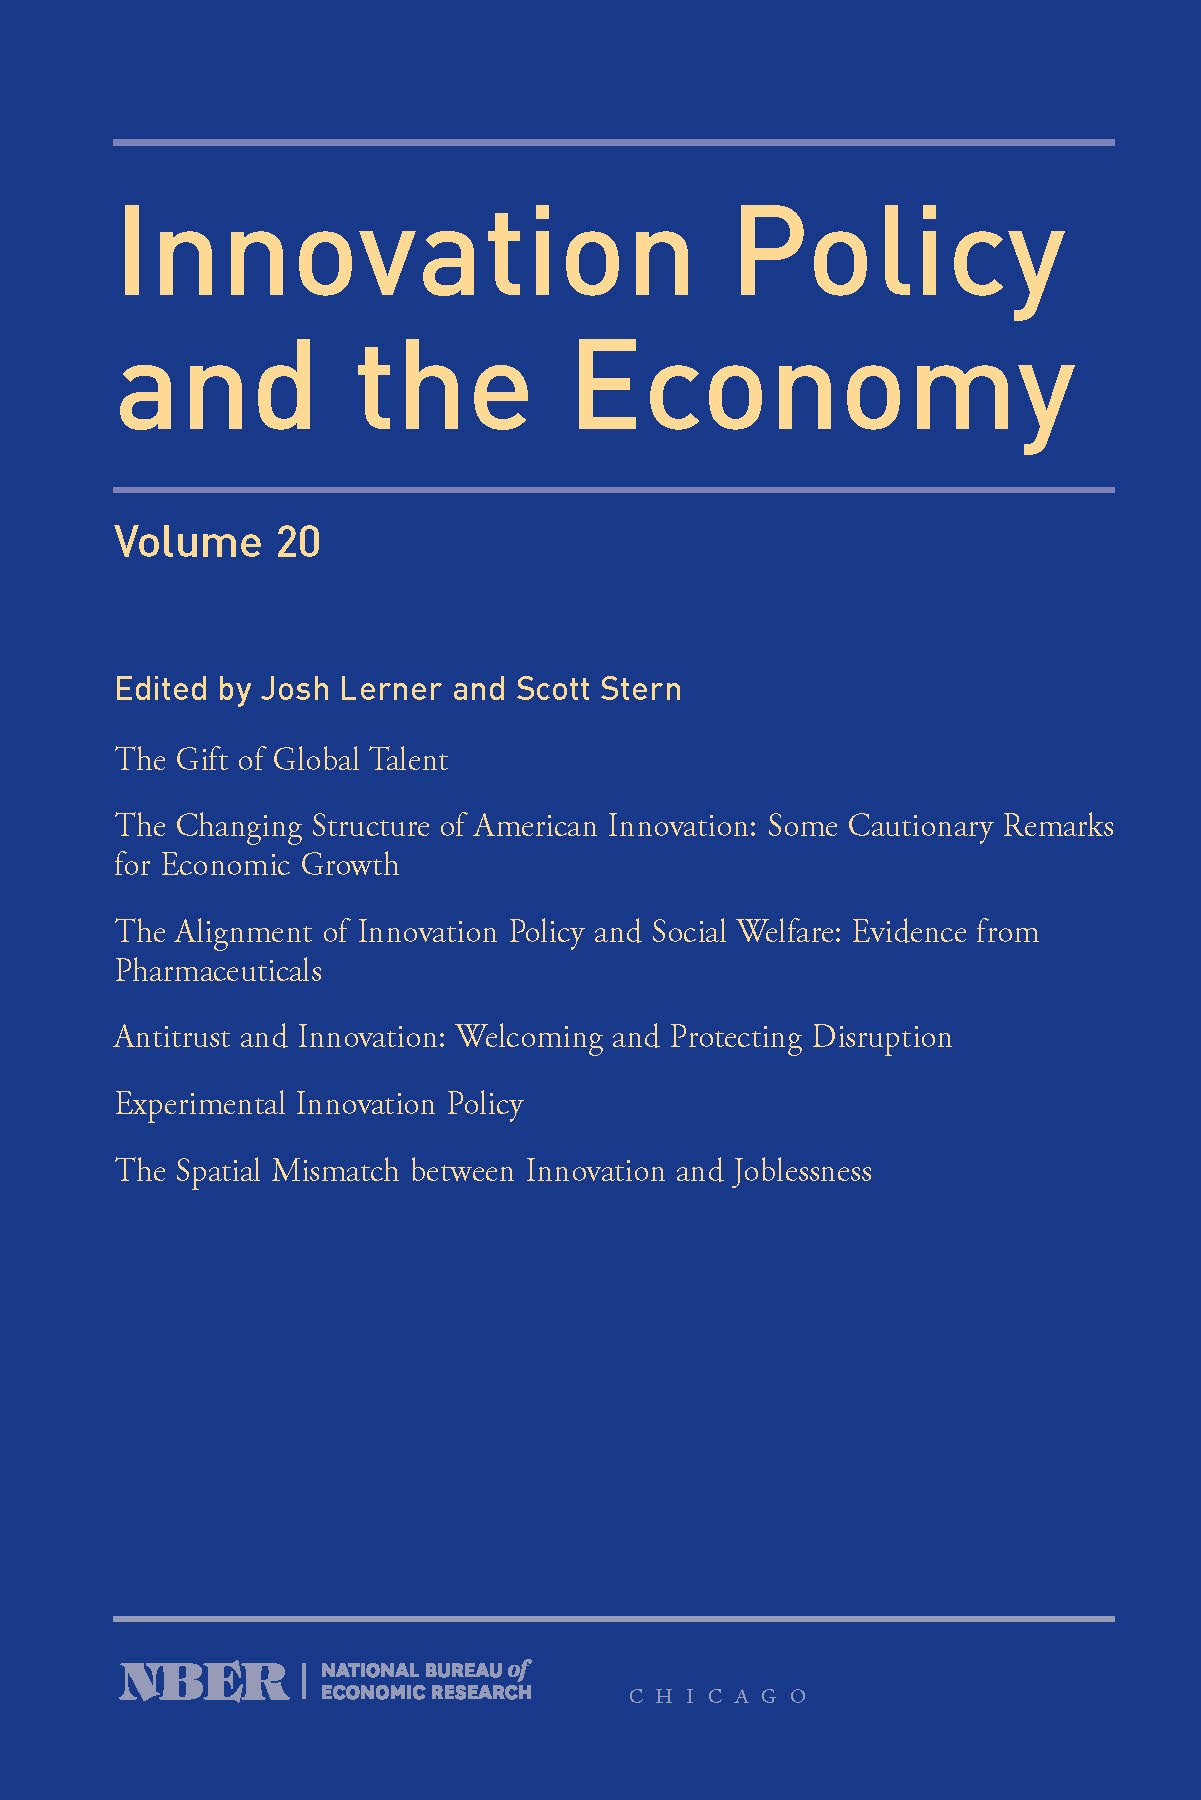 Innovation Policy and the Economy, 2019: Volume 20